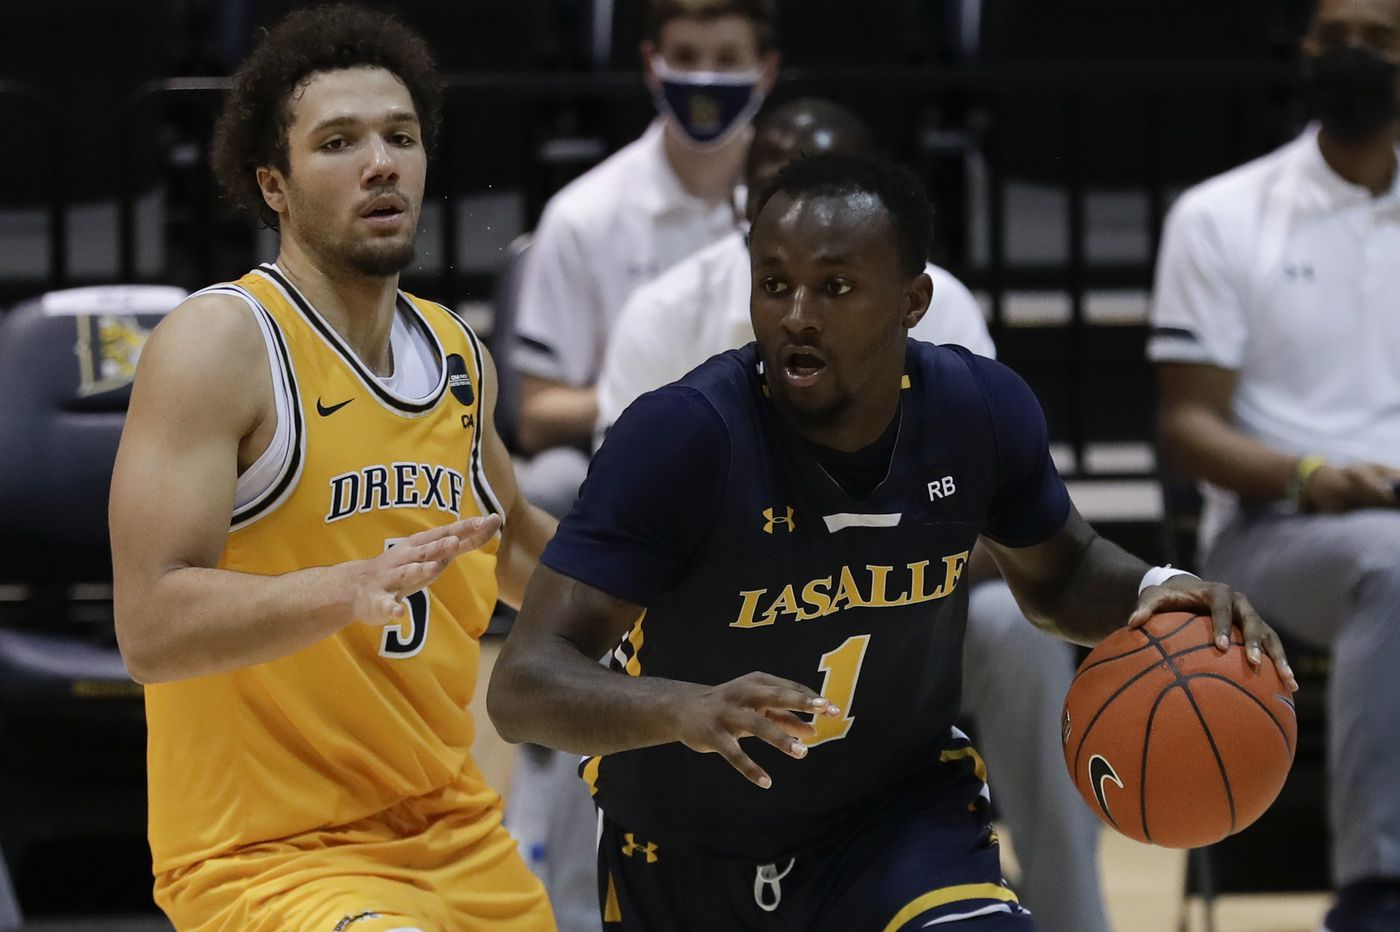 La Salle moves men's basketball game vs. Davidson from February to this weekend